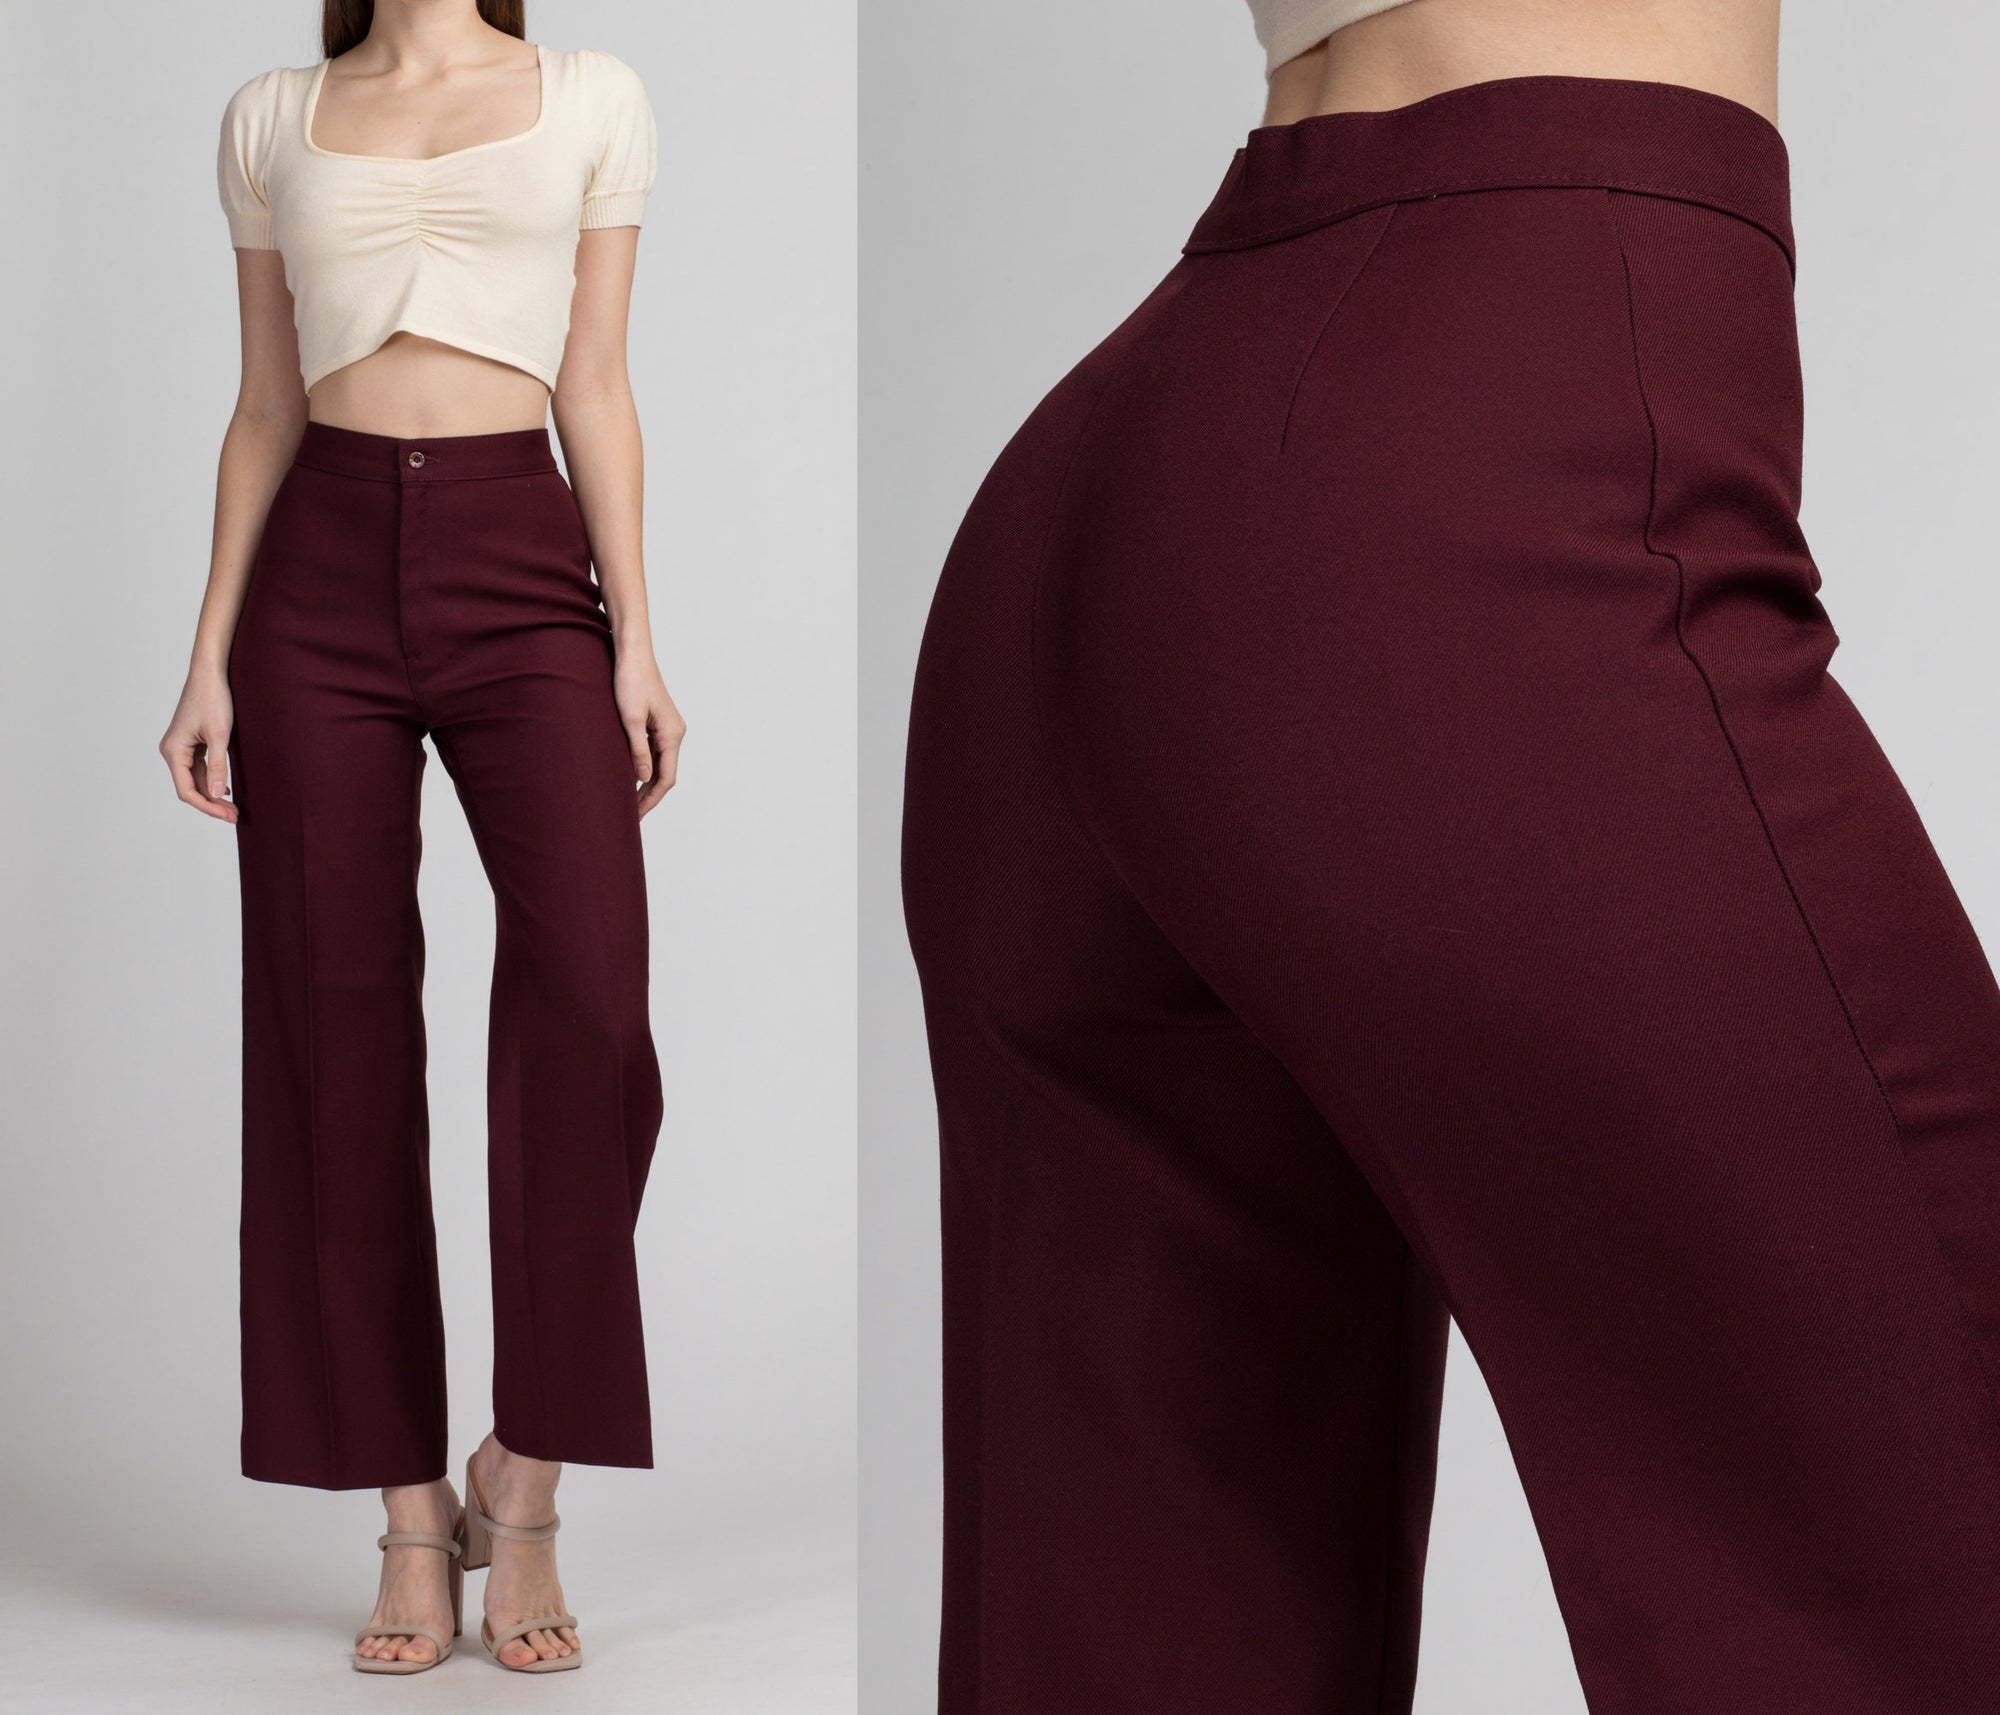 70s Levi's Maroon High Waist Pants - Small, 26"